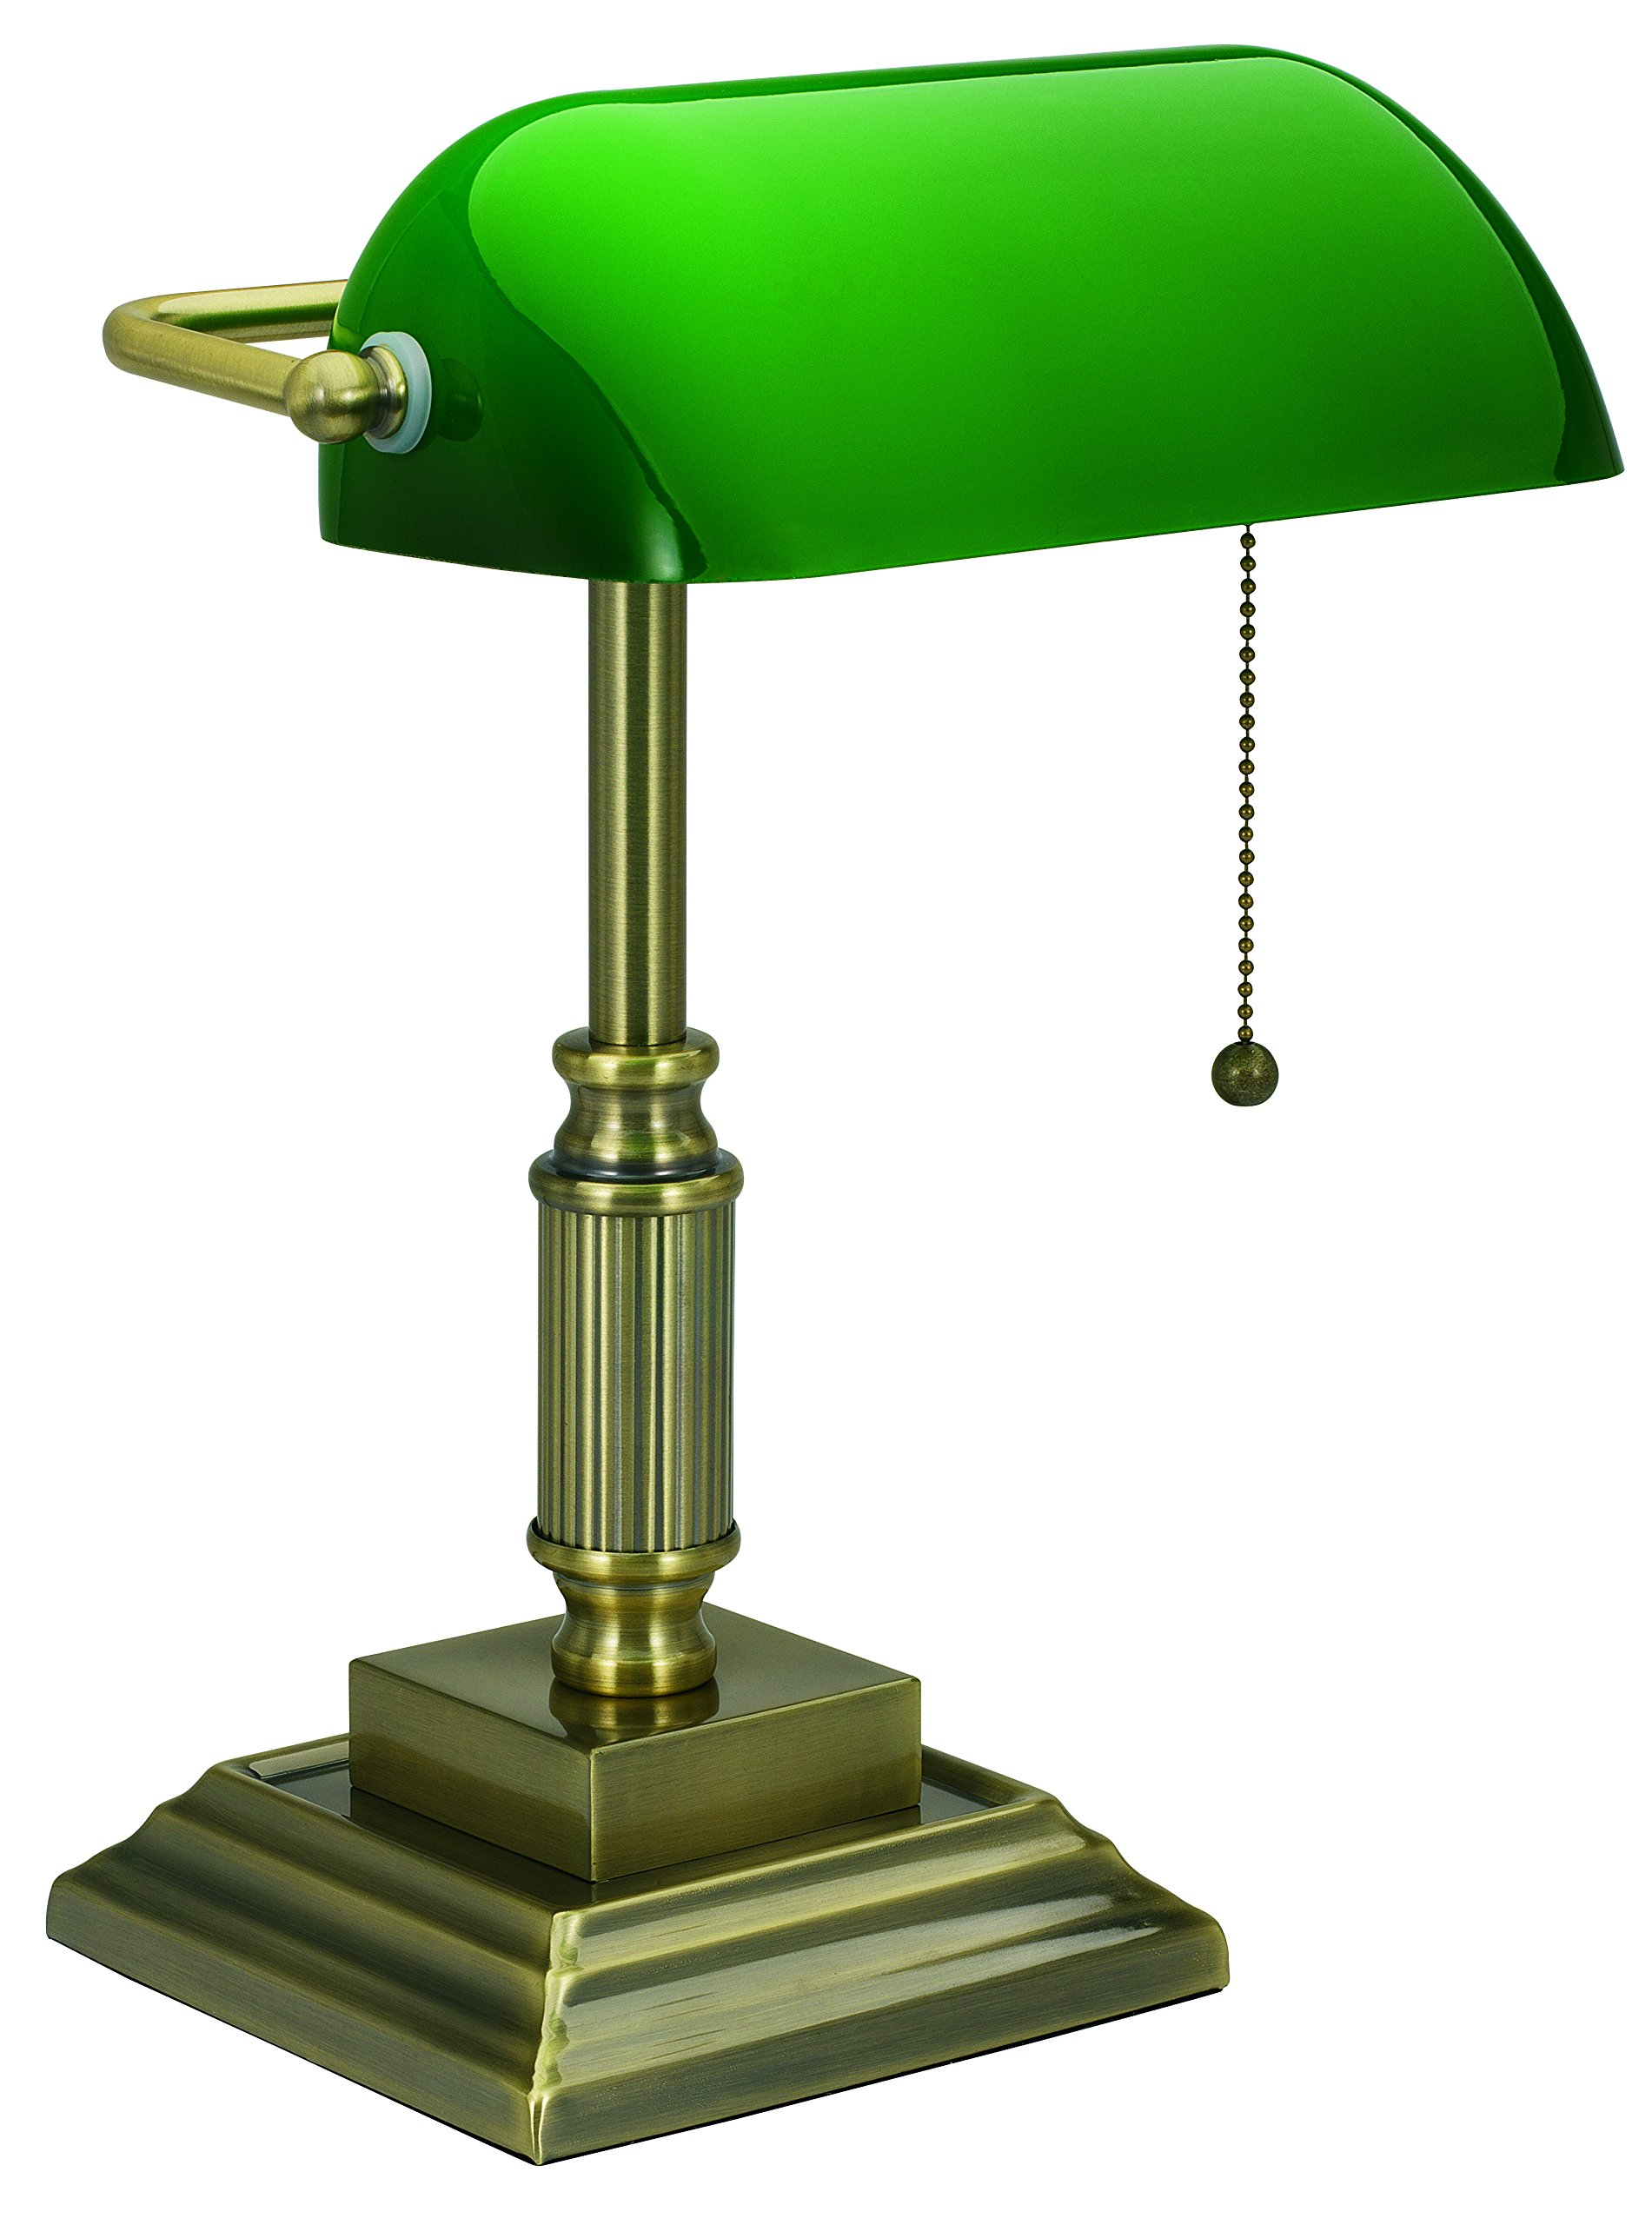 dark brass and by designed dudley bl green desk lamp bestlite best robert